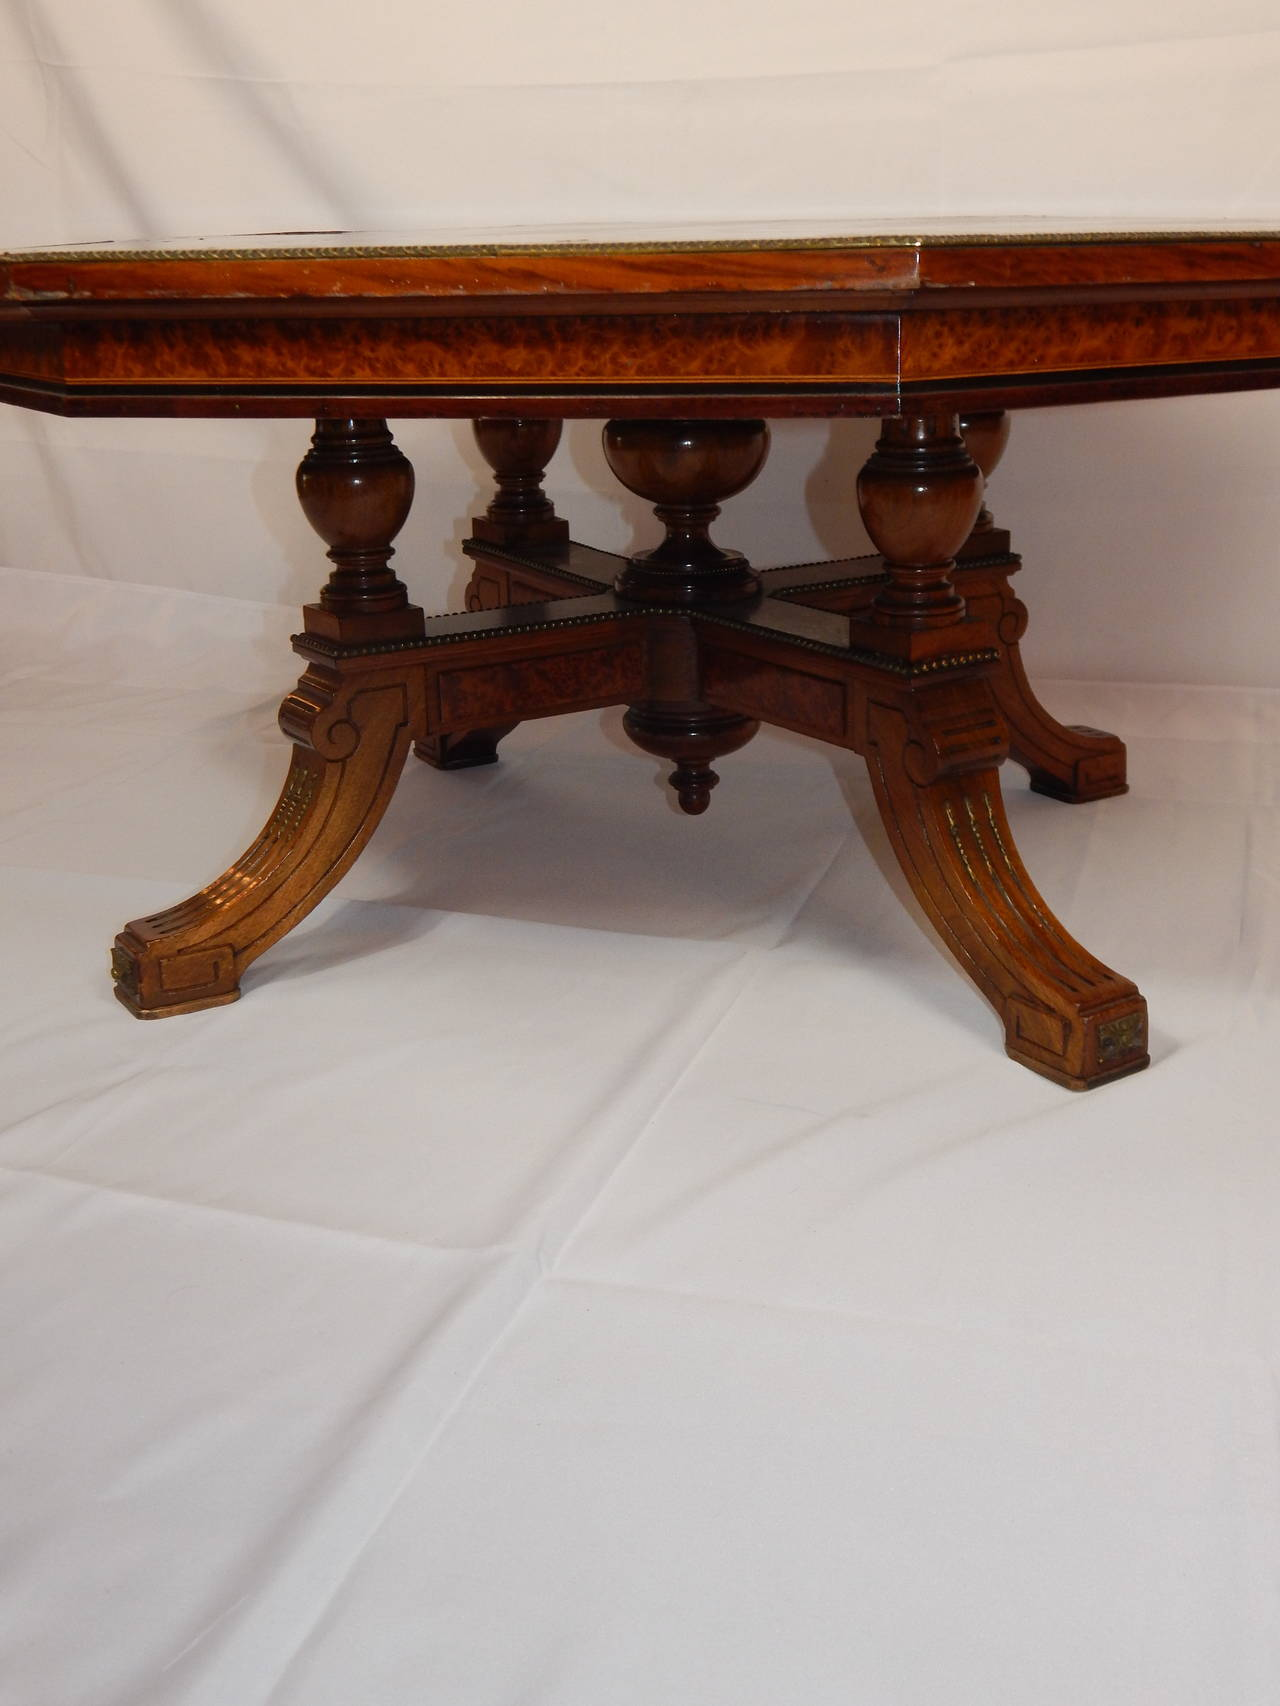 English Burl Walnut And Calamander Inlaid Coffee Table At 1stdibs